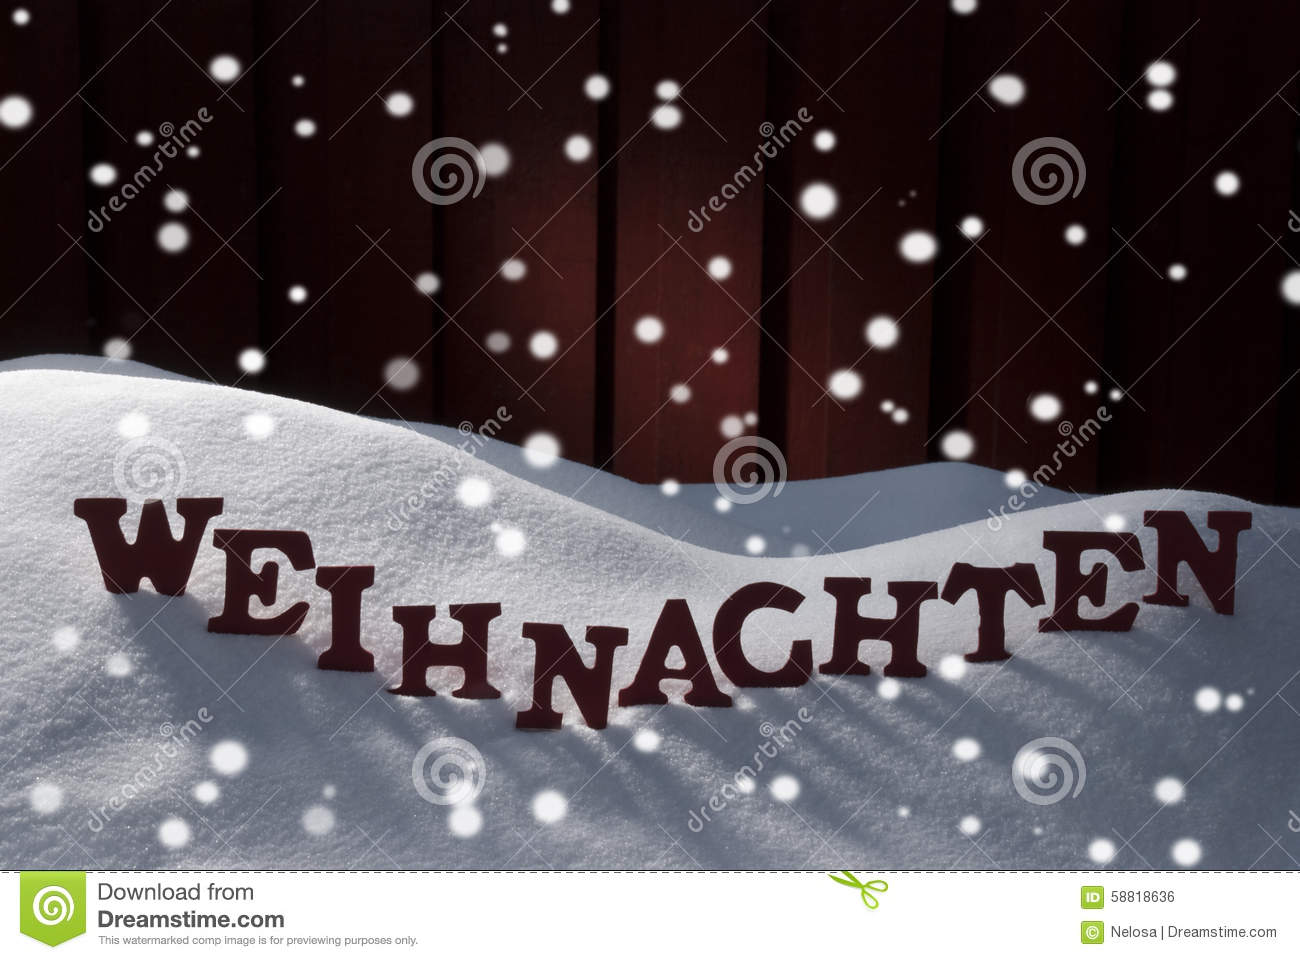 Weihnachten Mean Christmas On Snow With Snowflakes Stock Photo ...